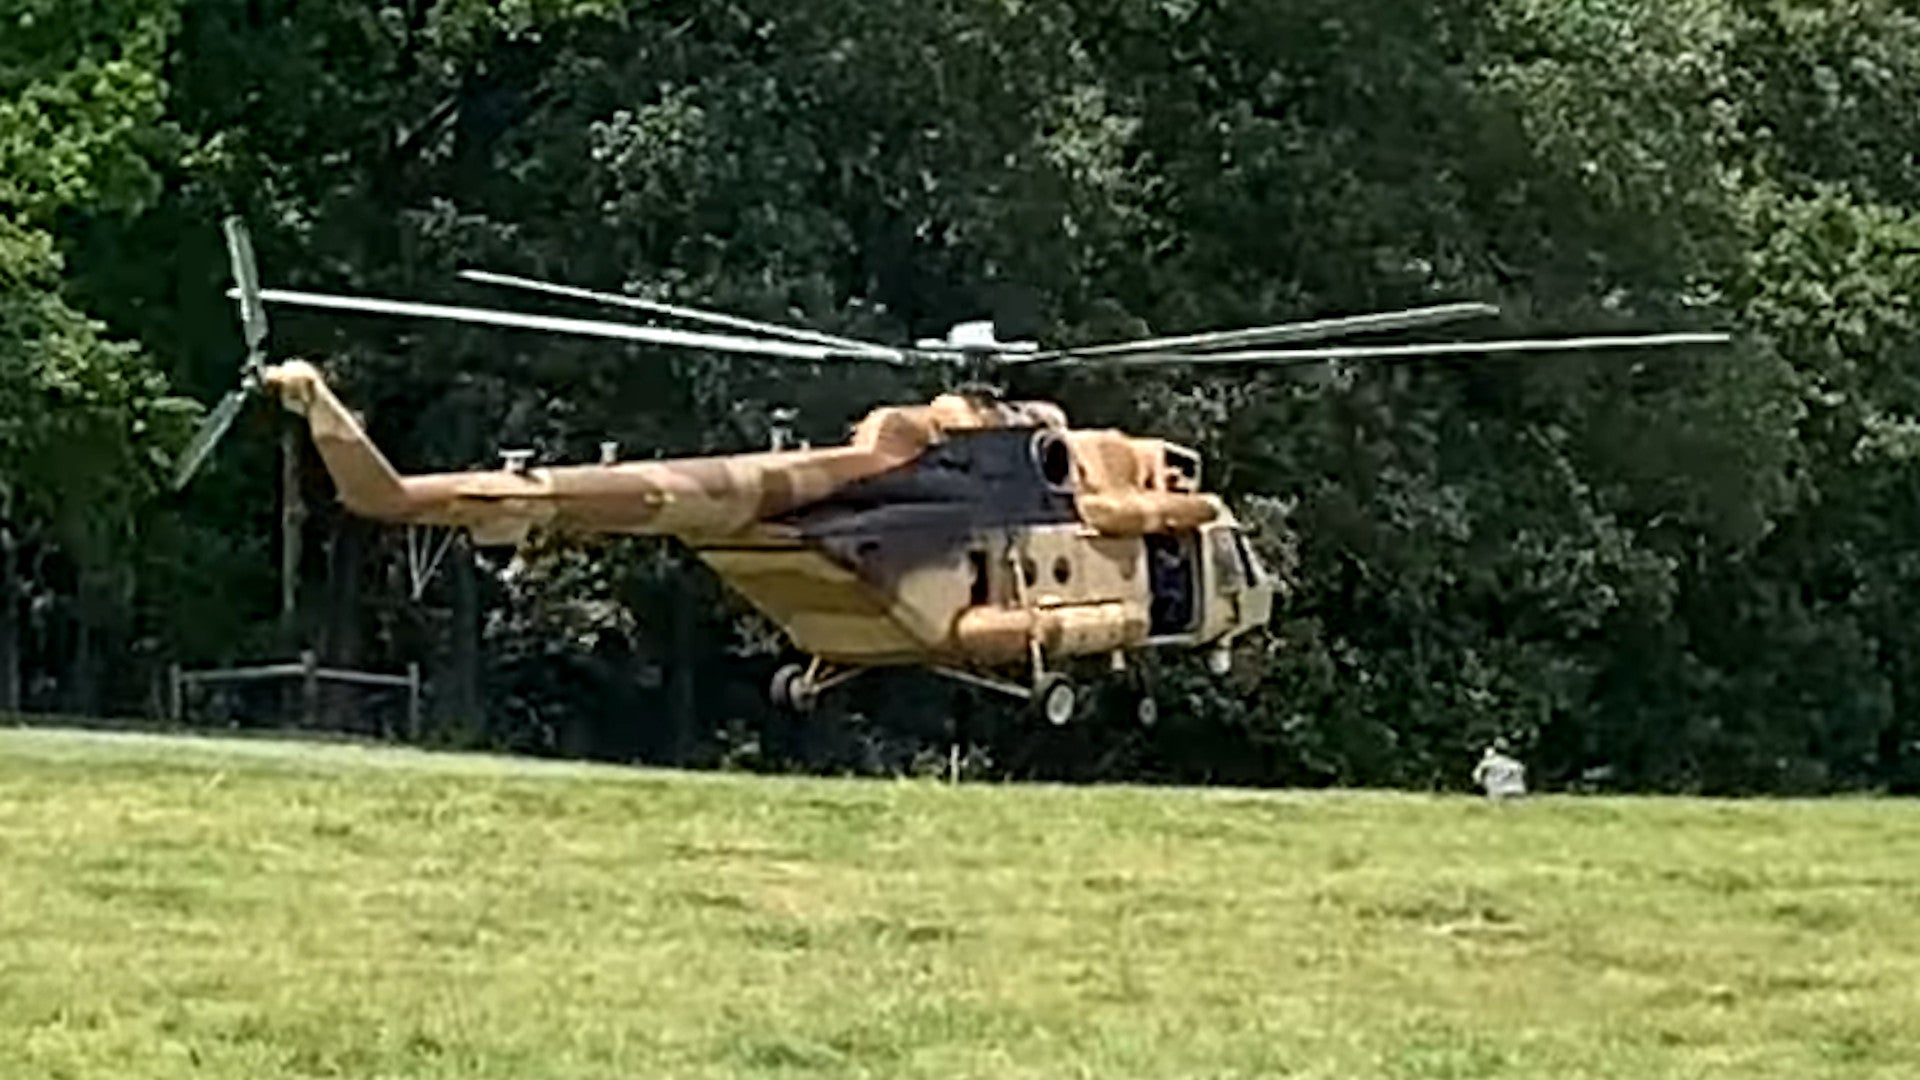 Earlier this year, Dan Moore, who owns a farm in North Carolina, had unusual visits by not one, but two secretive aircraft. After a Russian-made Mi-17